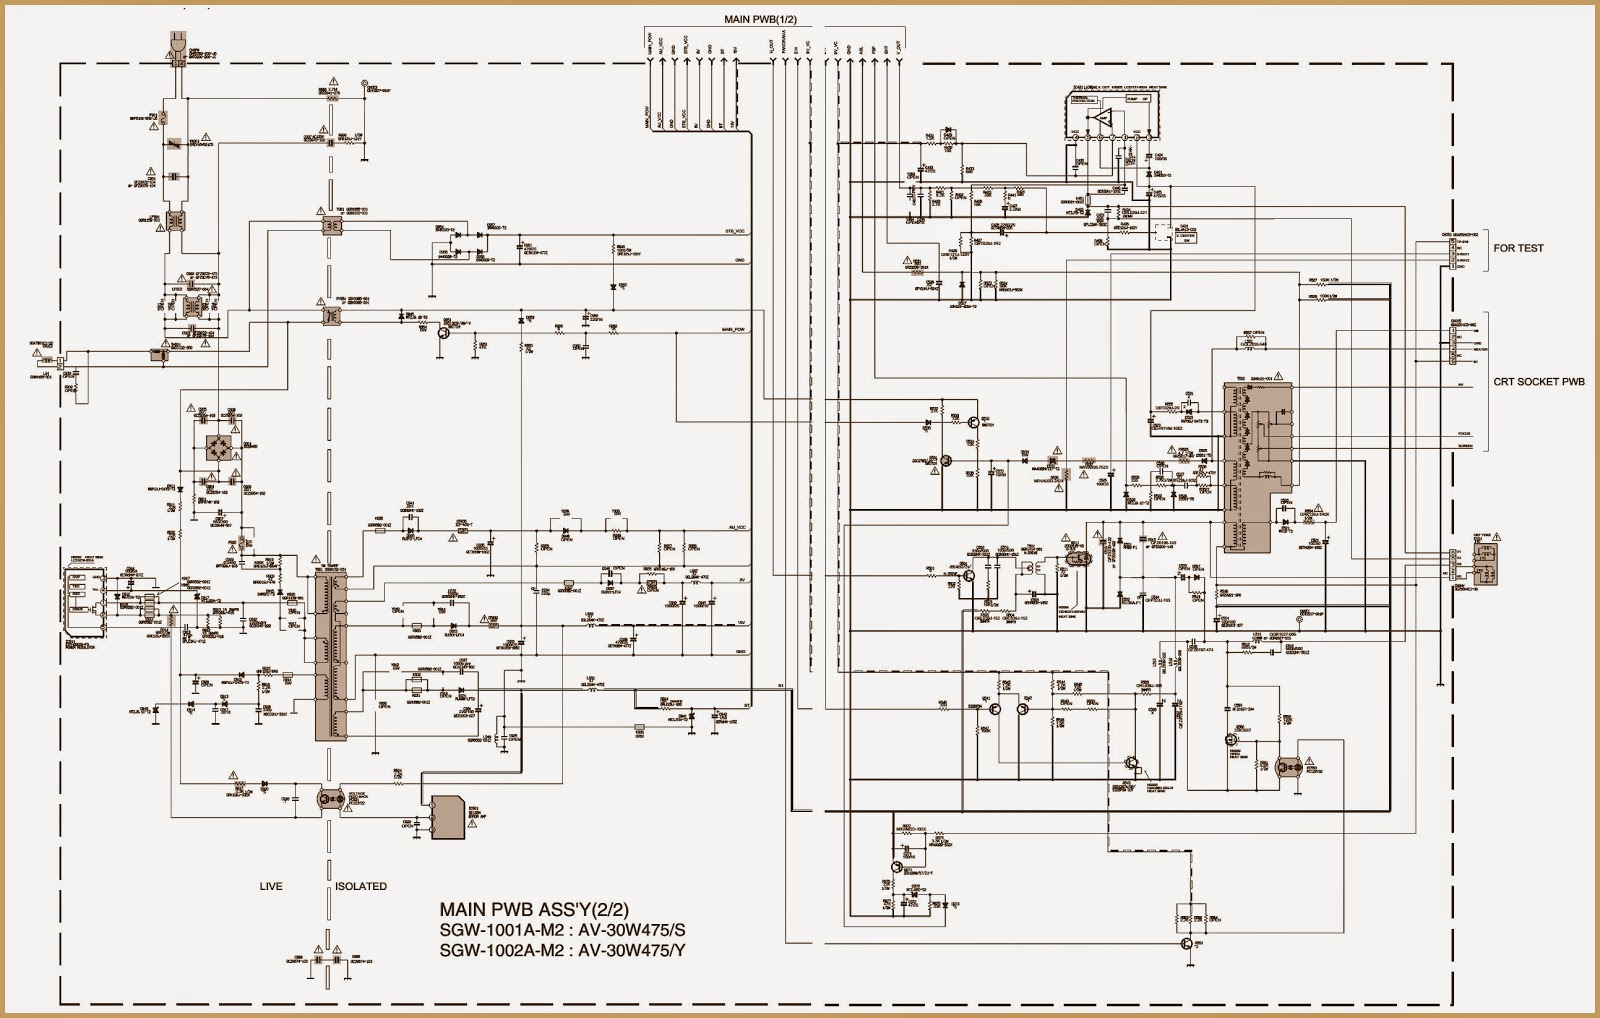 Circuit Diagram Jvc Tv Wiring Will Be A Thing Electronic Board Schematic Diagrams Av30w475 Crt Smps Urc Set Up Free